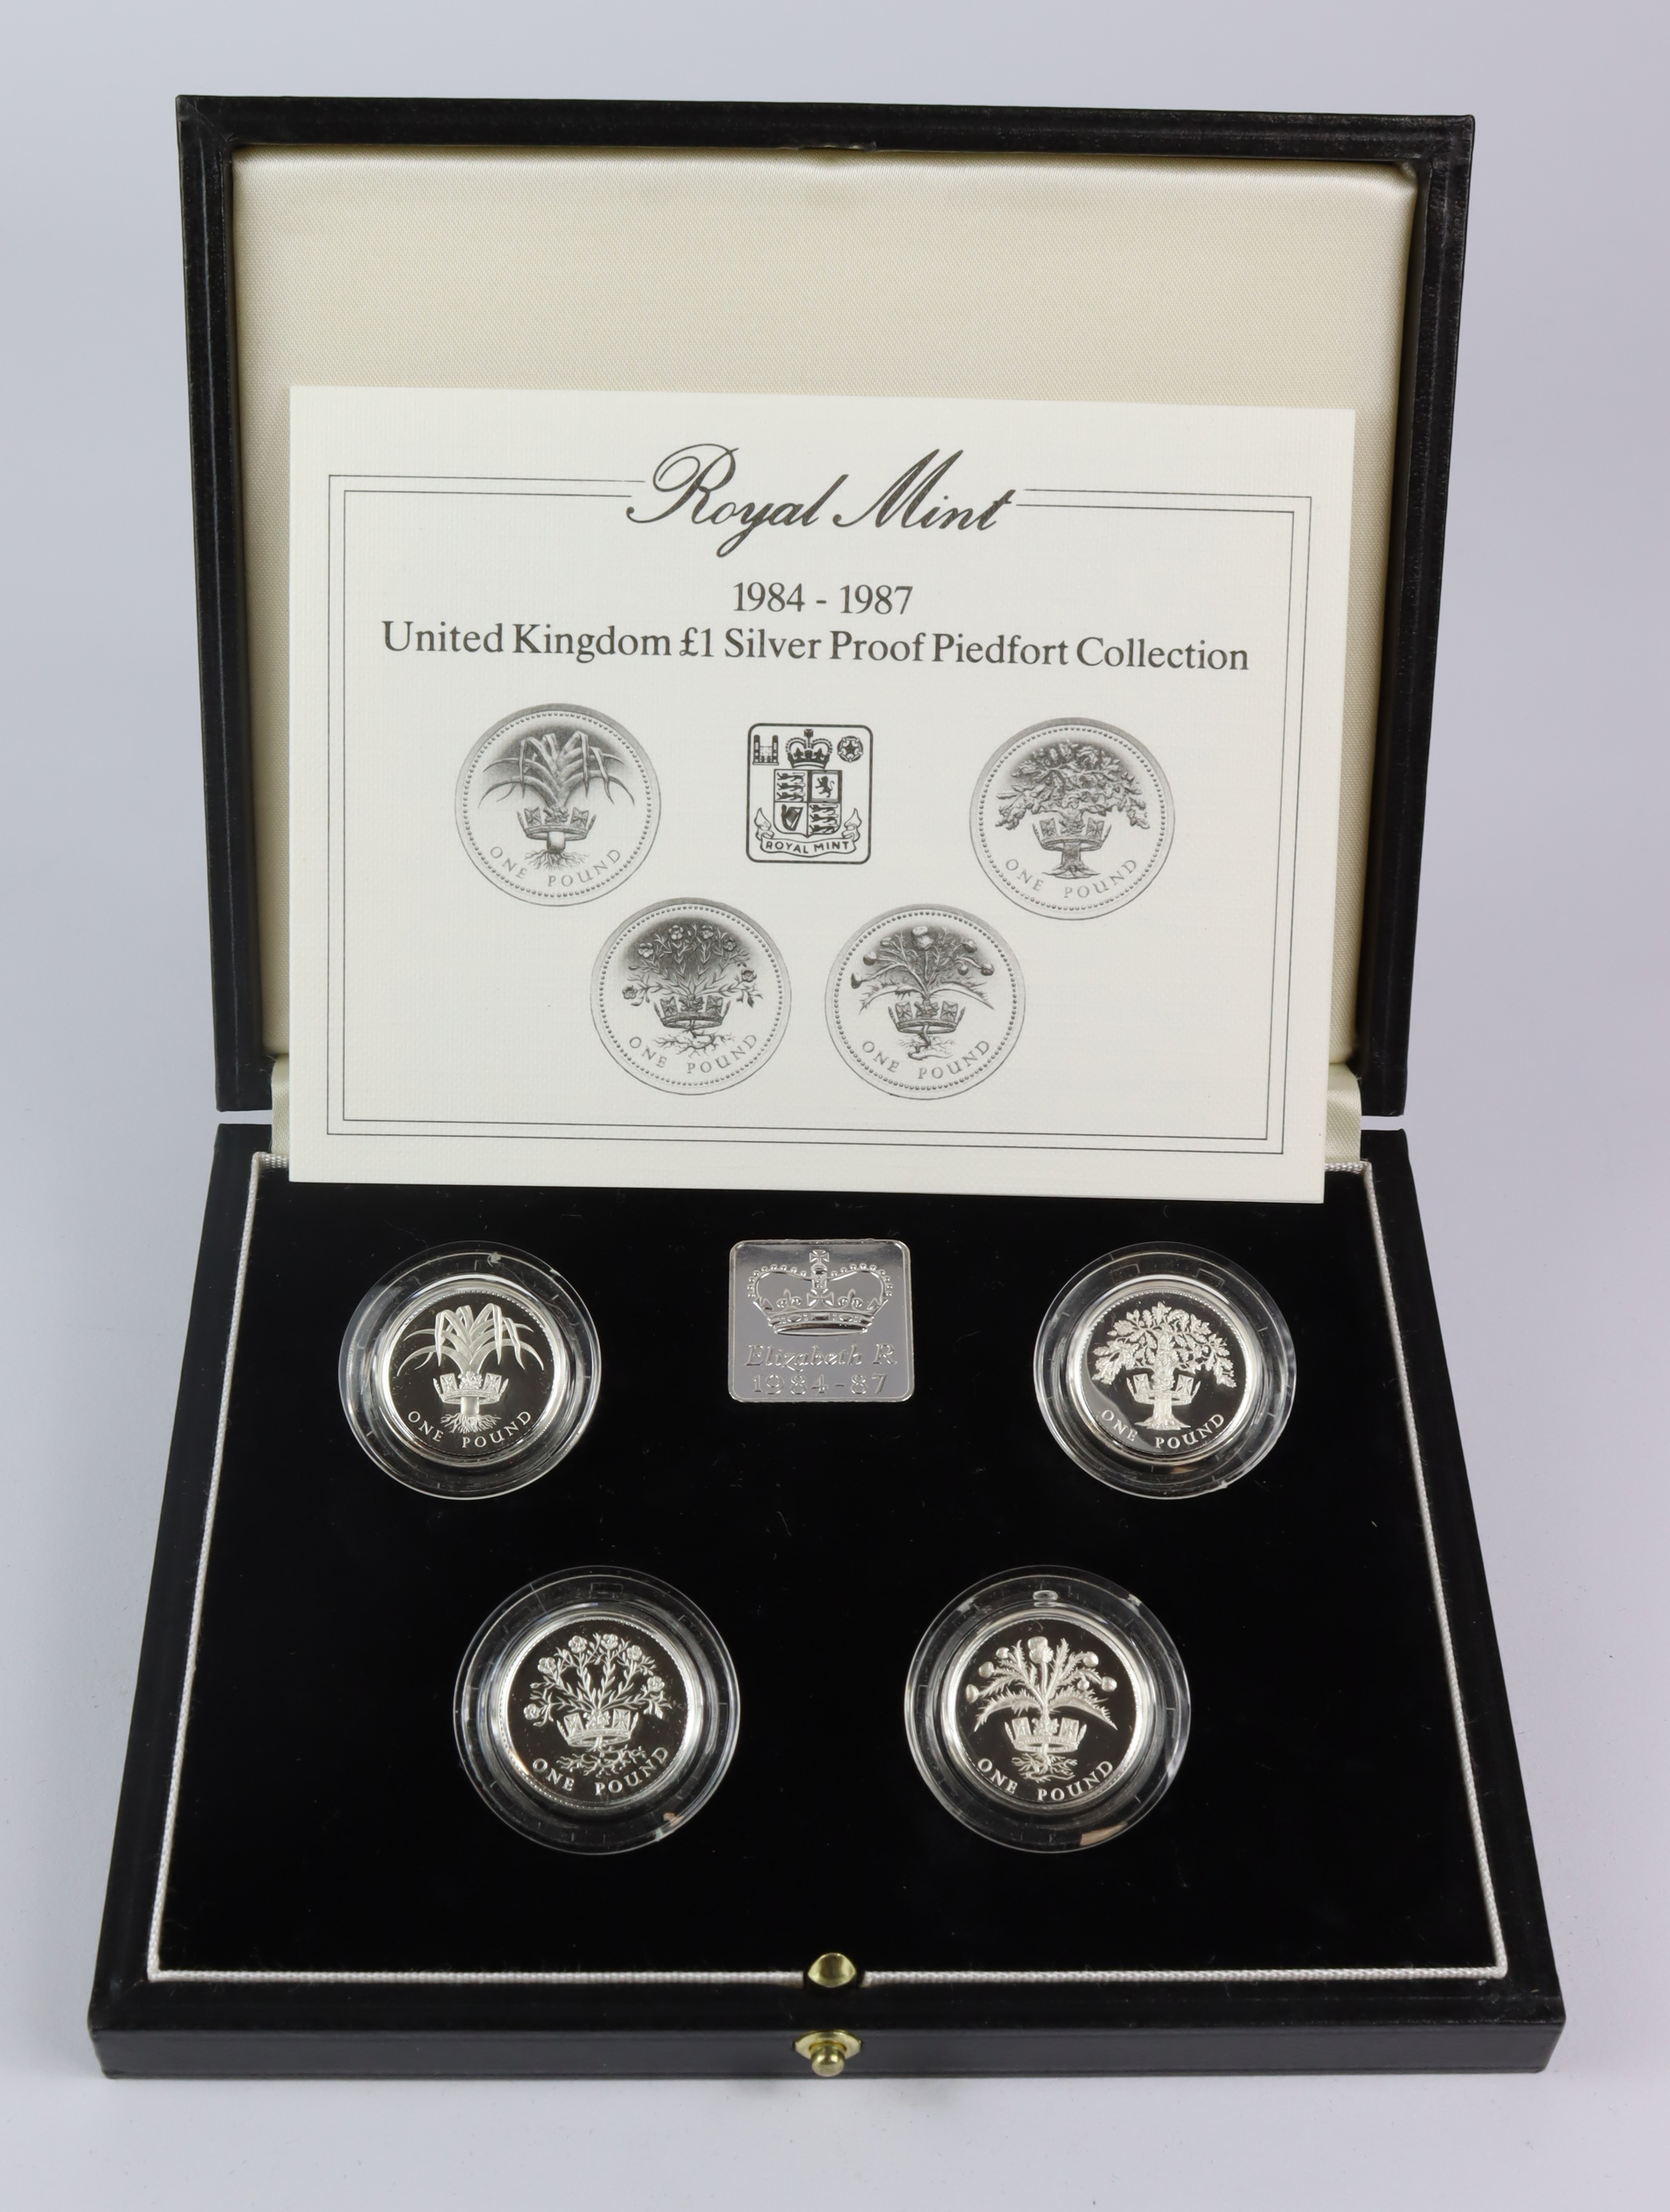 One Pound Silver Proof Piedfort four coin set 1984 - 1987 FDC boxed as issued